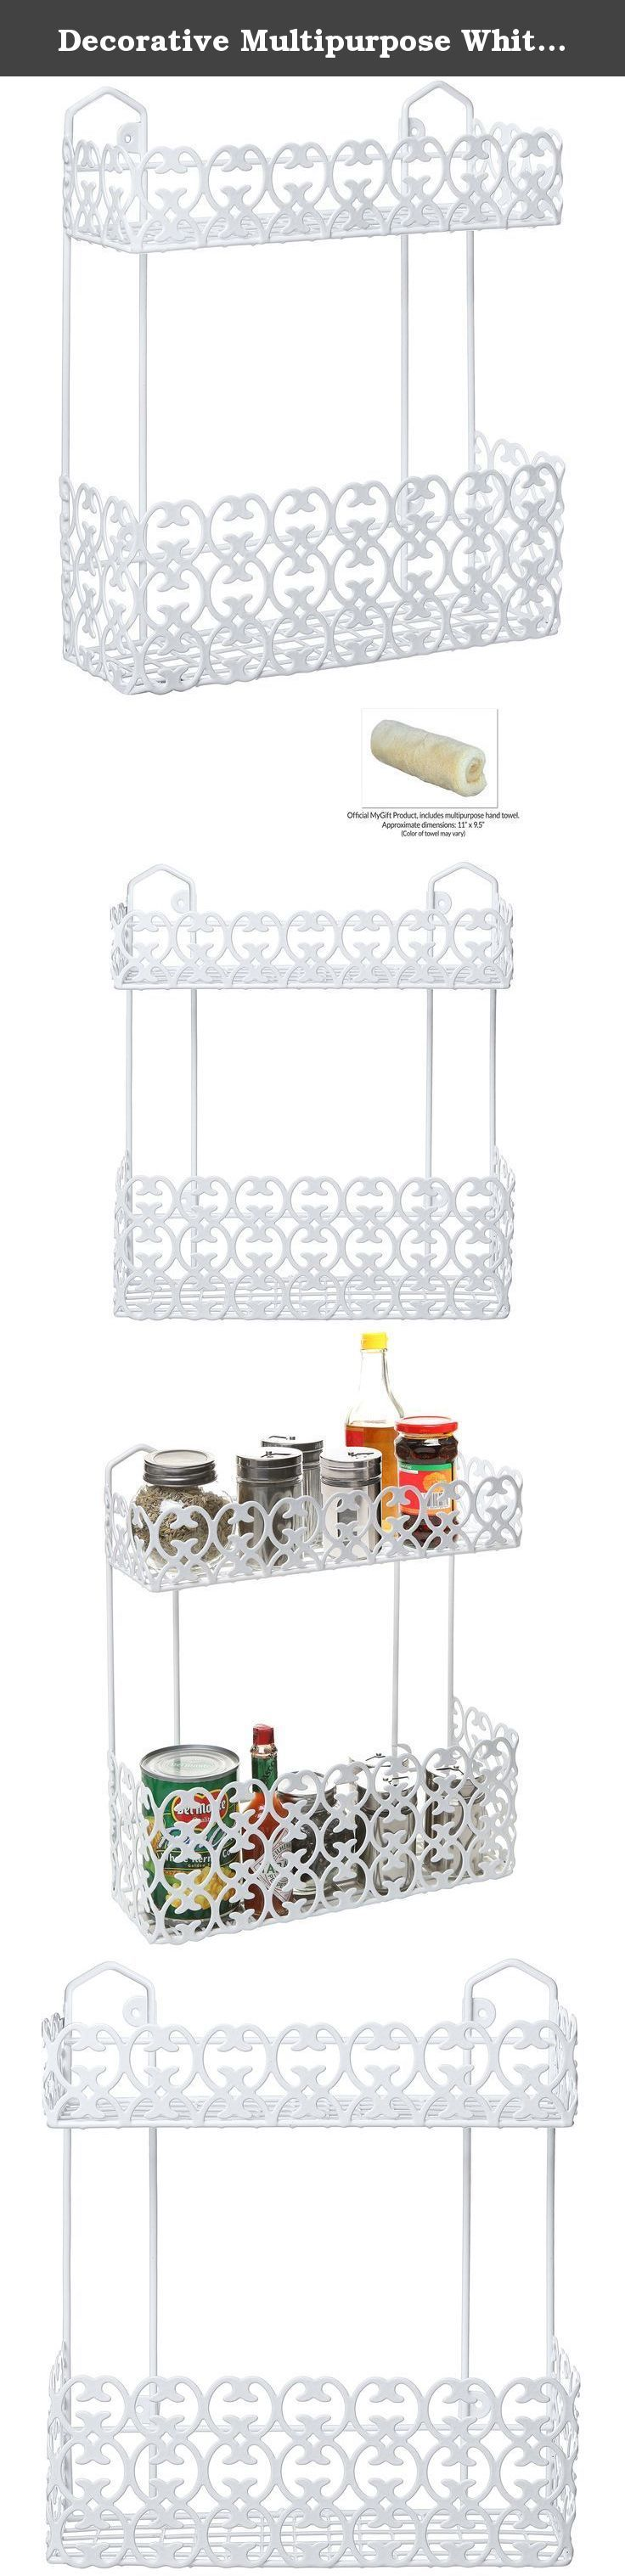 Decorative Multipurpose White Wall Mount 2 Tier Shelf Rack for Kitchen Spices / Bathroom Product Holder. Make organizing your everyday necessities simple with this decorative hanging storage rack. Made of sturdy white metal, this organizer features 2 tiers of shelf baskets, 1 large and 1 smaller, great for preventing clutter. Use in the kitchen to store spices and condiments, or hang in the bathroom for easy access to shampoo, soap, shaving cream and lotions. Mount onto the wall with the...